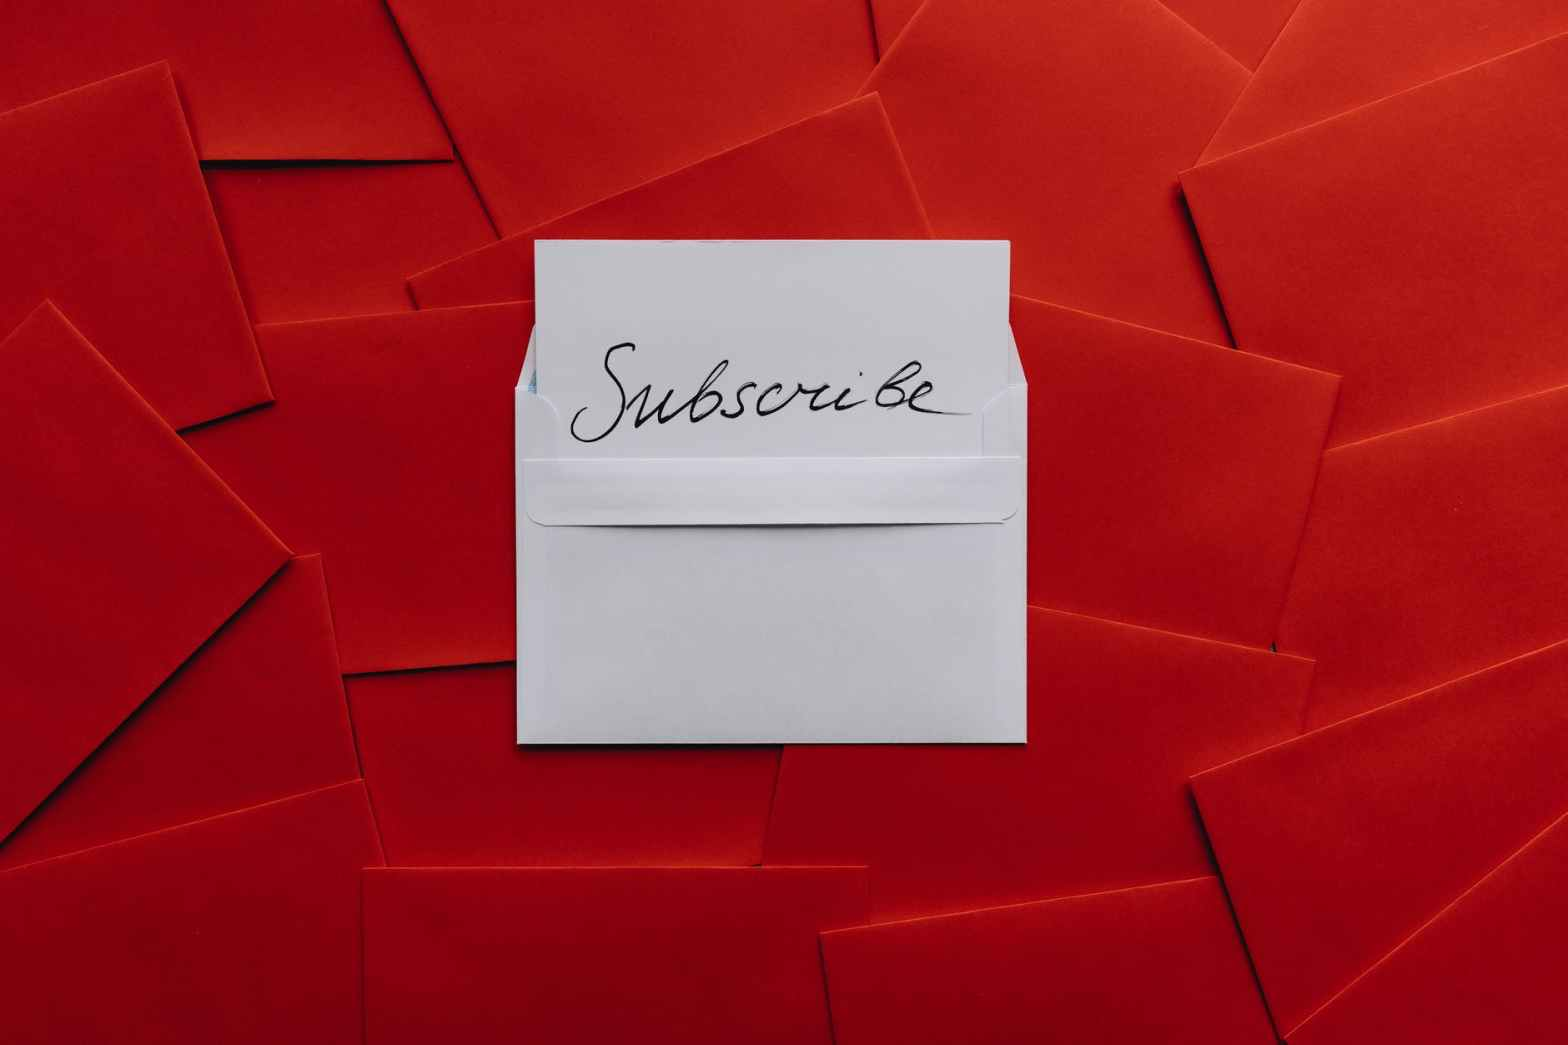 card on top of red envelopes